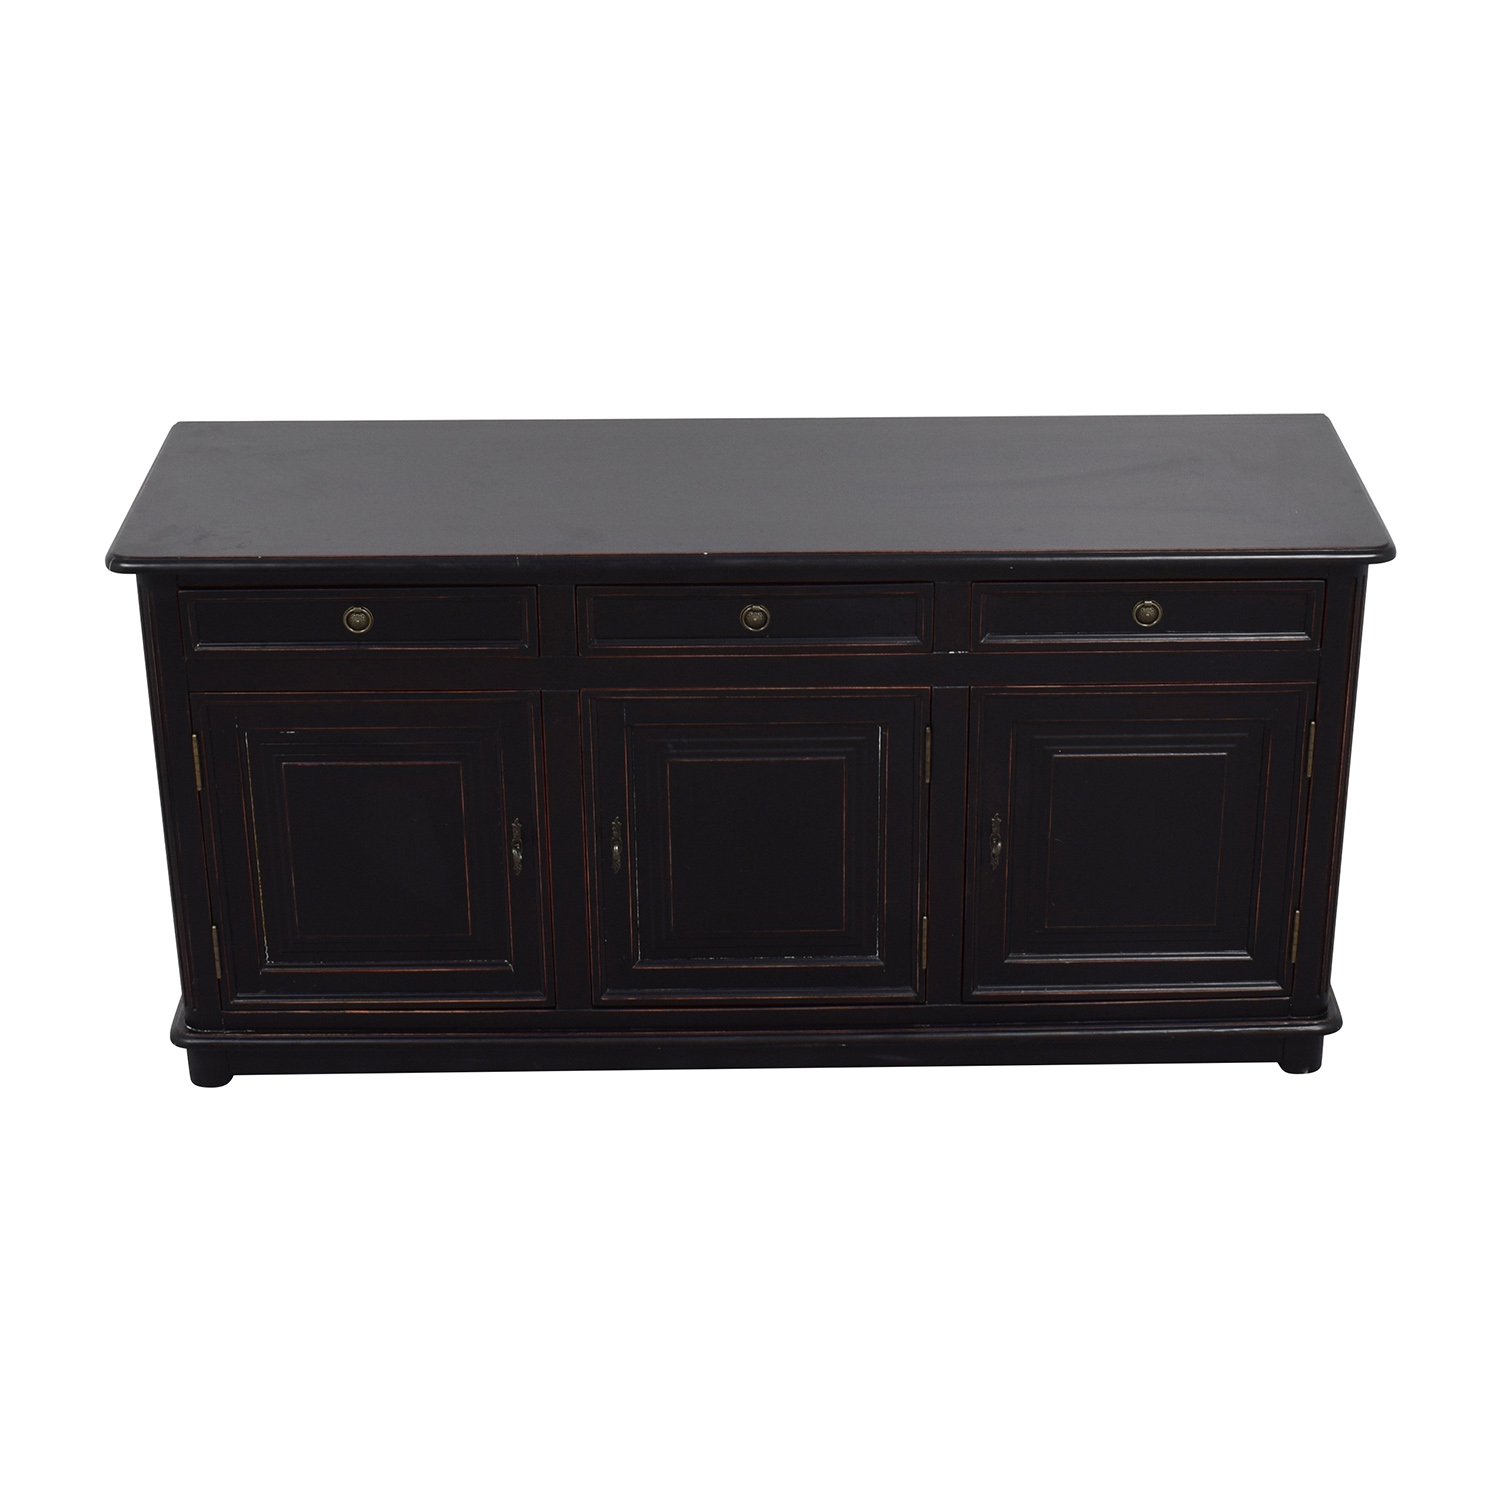 shop Ballard Designs Dehavilland 3-Drawer Console or Sidetable Ballard Designs Dressers